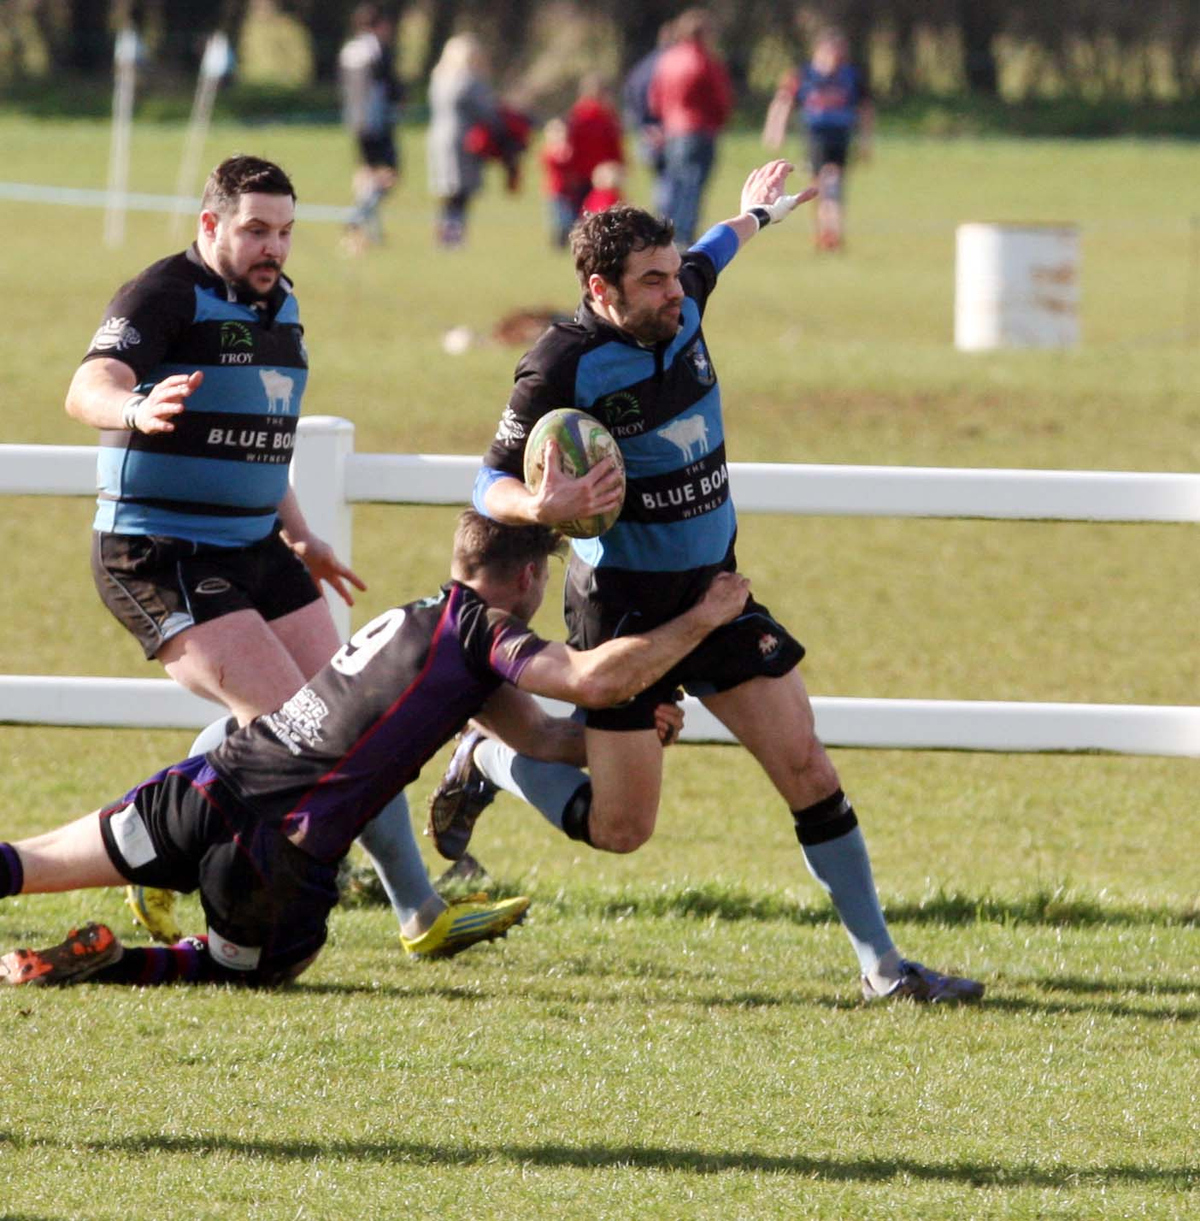 Witney full back Robbie Mills breaks through to score their opening try against Maidenhead,